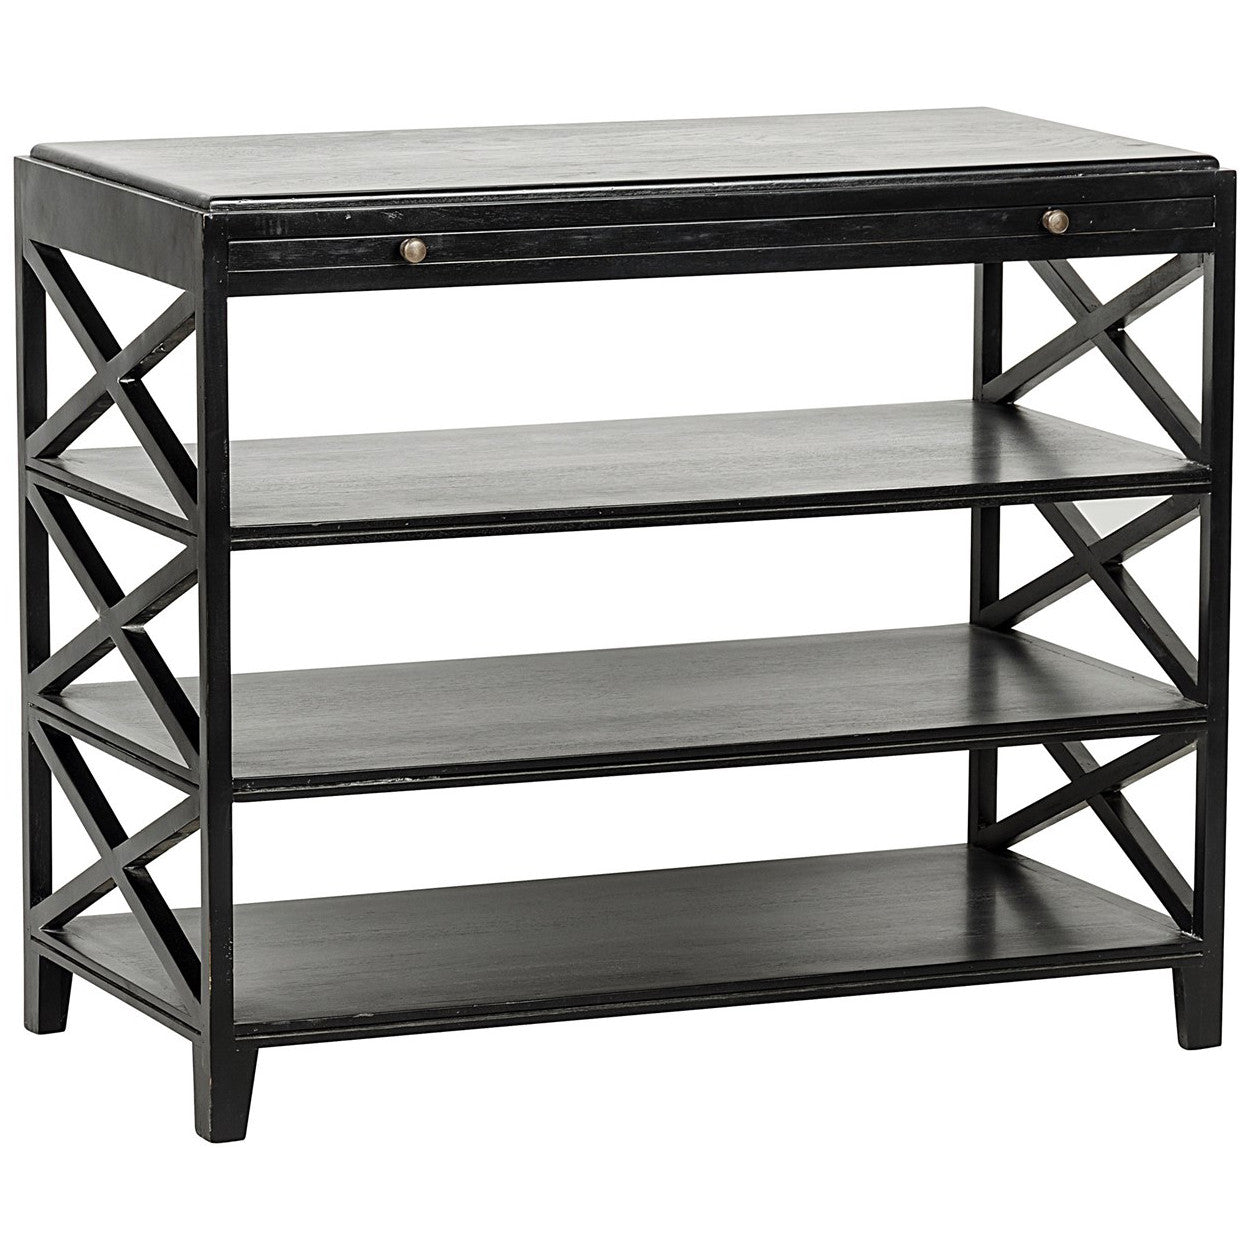 Noir - Sutton Criss-Cross Side Table, Hand Rubbed Black